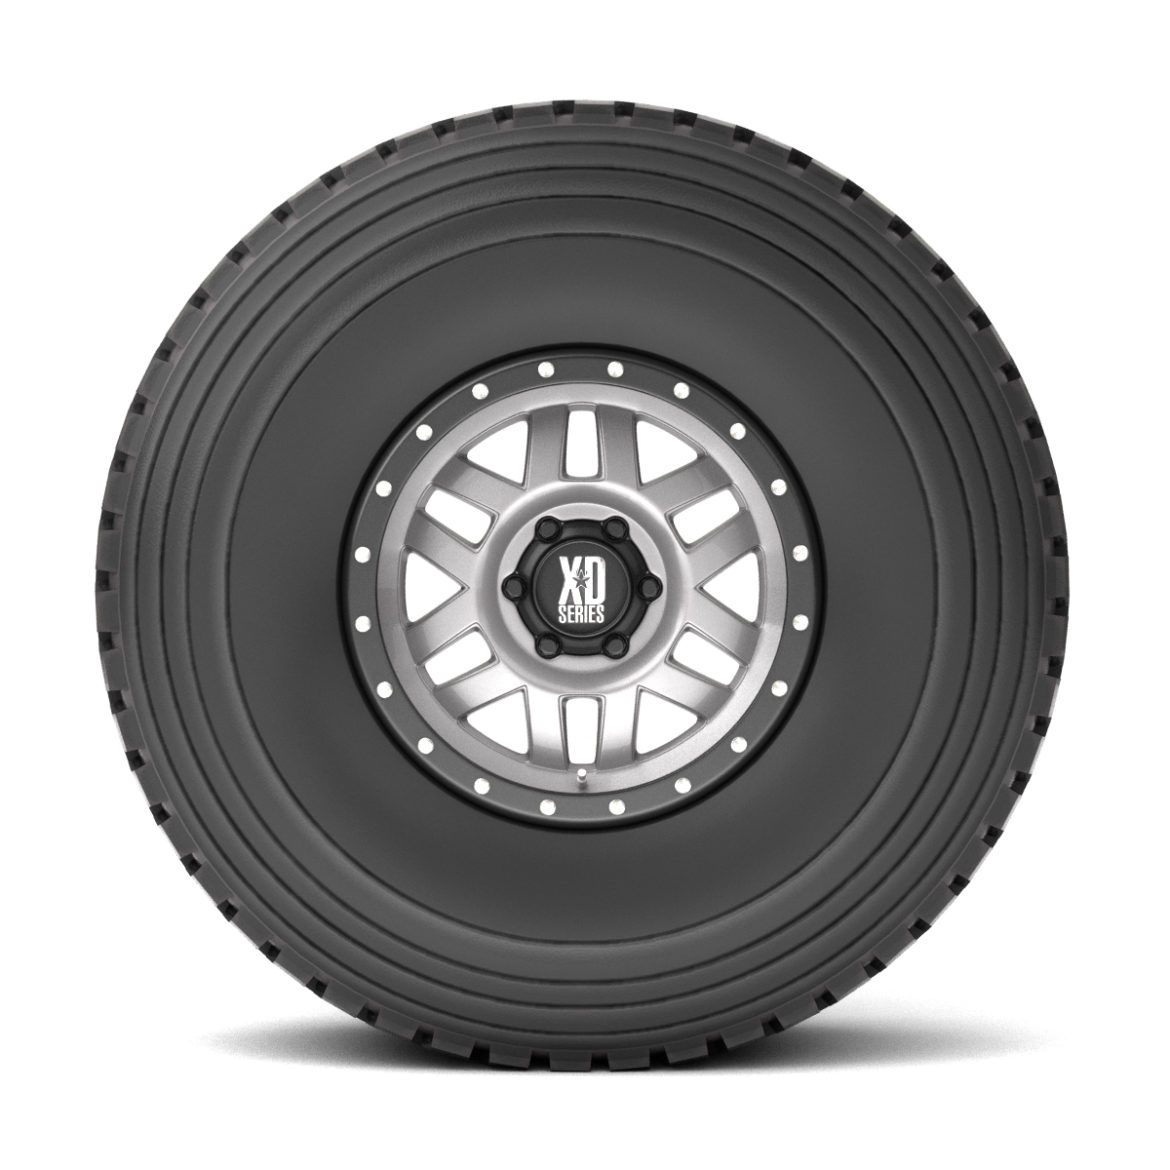 off road wheel and tire 9 3d model 3ds max fbx obj 295116